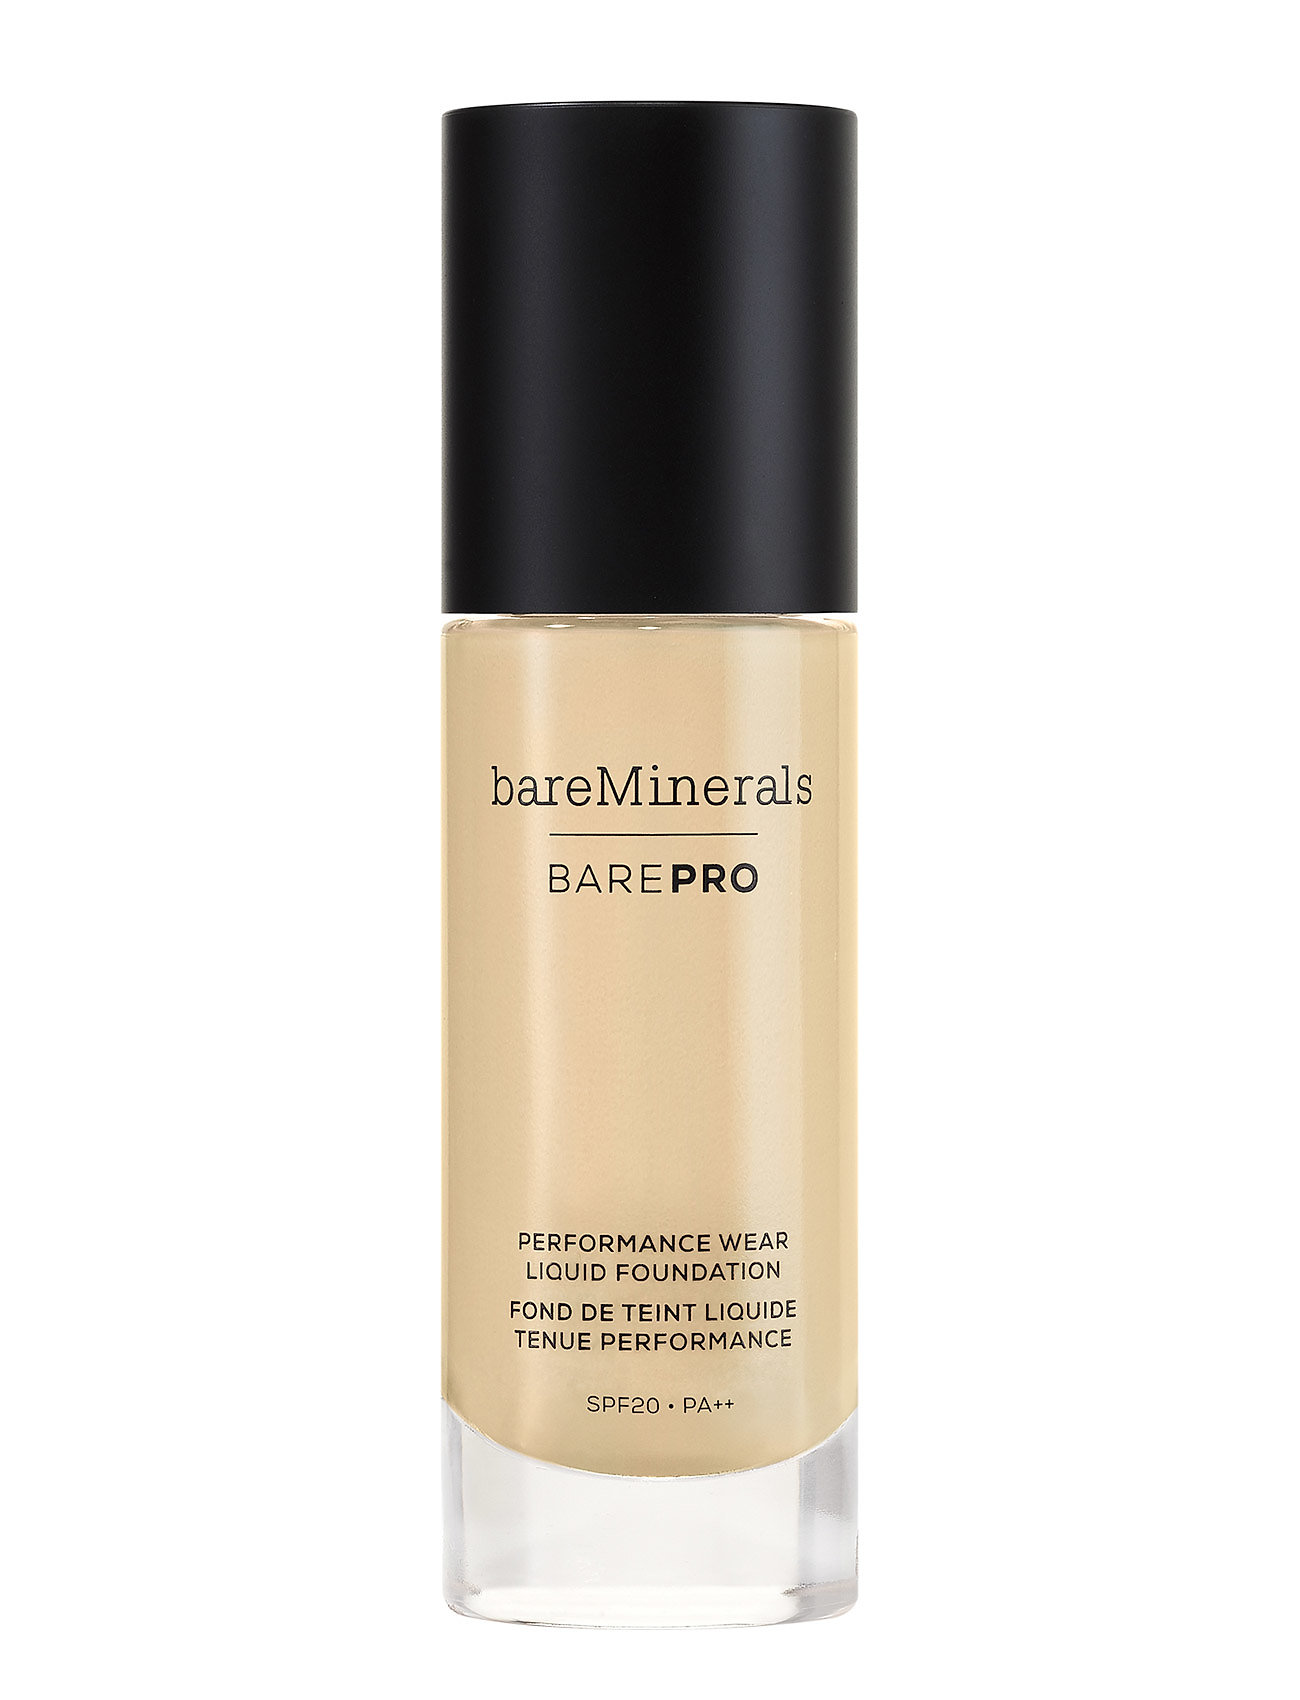 Image of Barepro Performance Wear Liquid Foundation Spf 20 Foundation Makeup BareMinerals (3067521529)